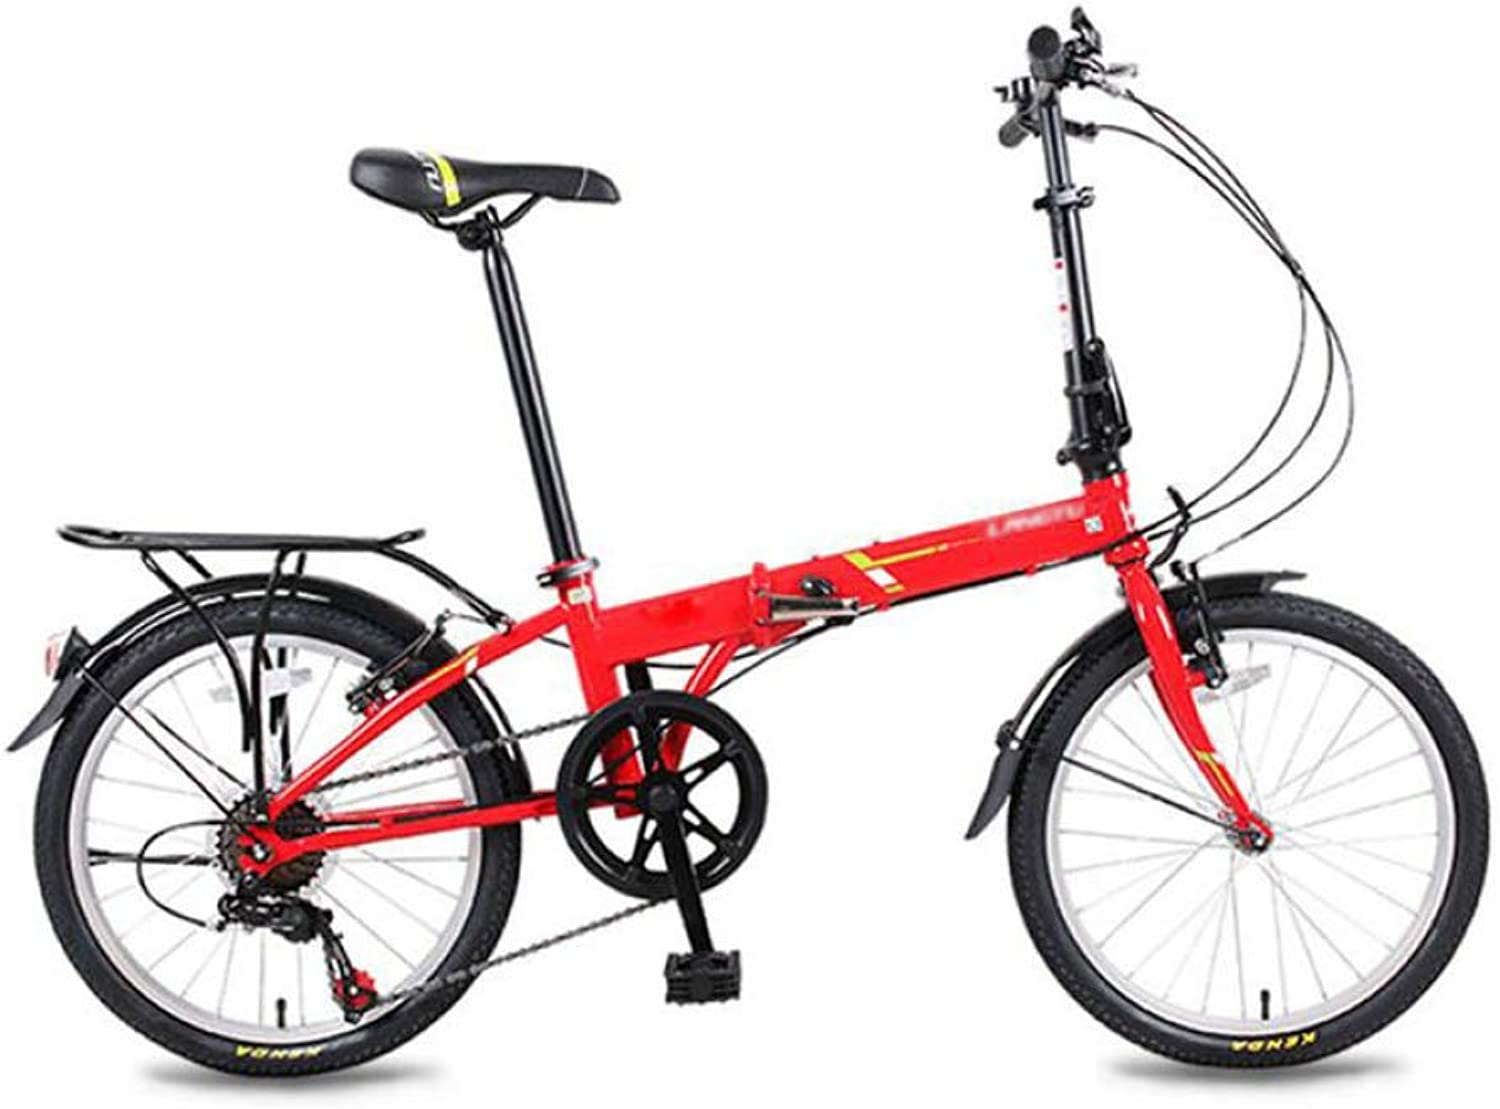 AOHMG Folding Bike Lightweight, 6Speed Adult City Foldable Bike with Comfort Saddle,Red_20in